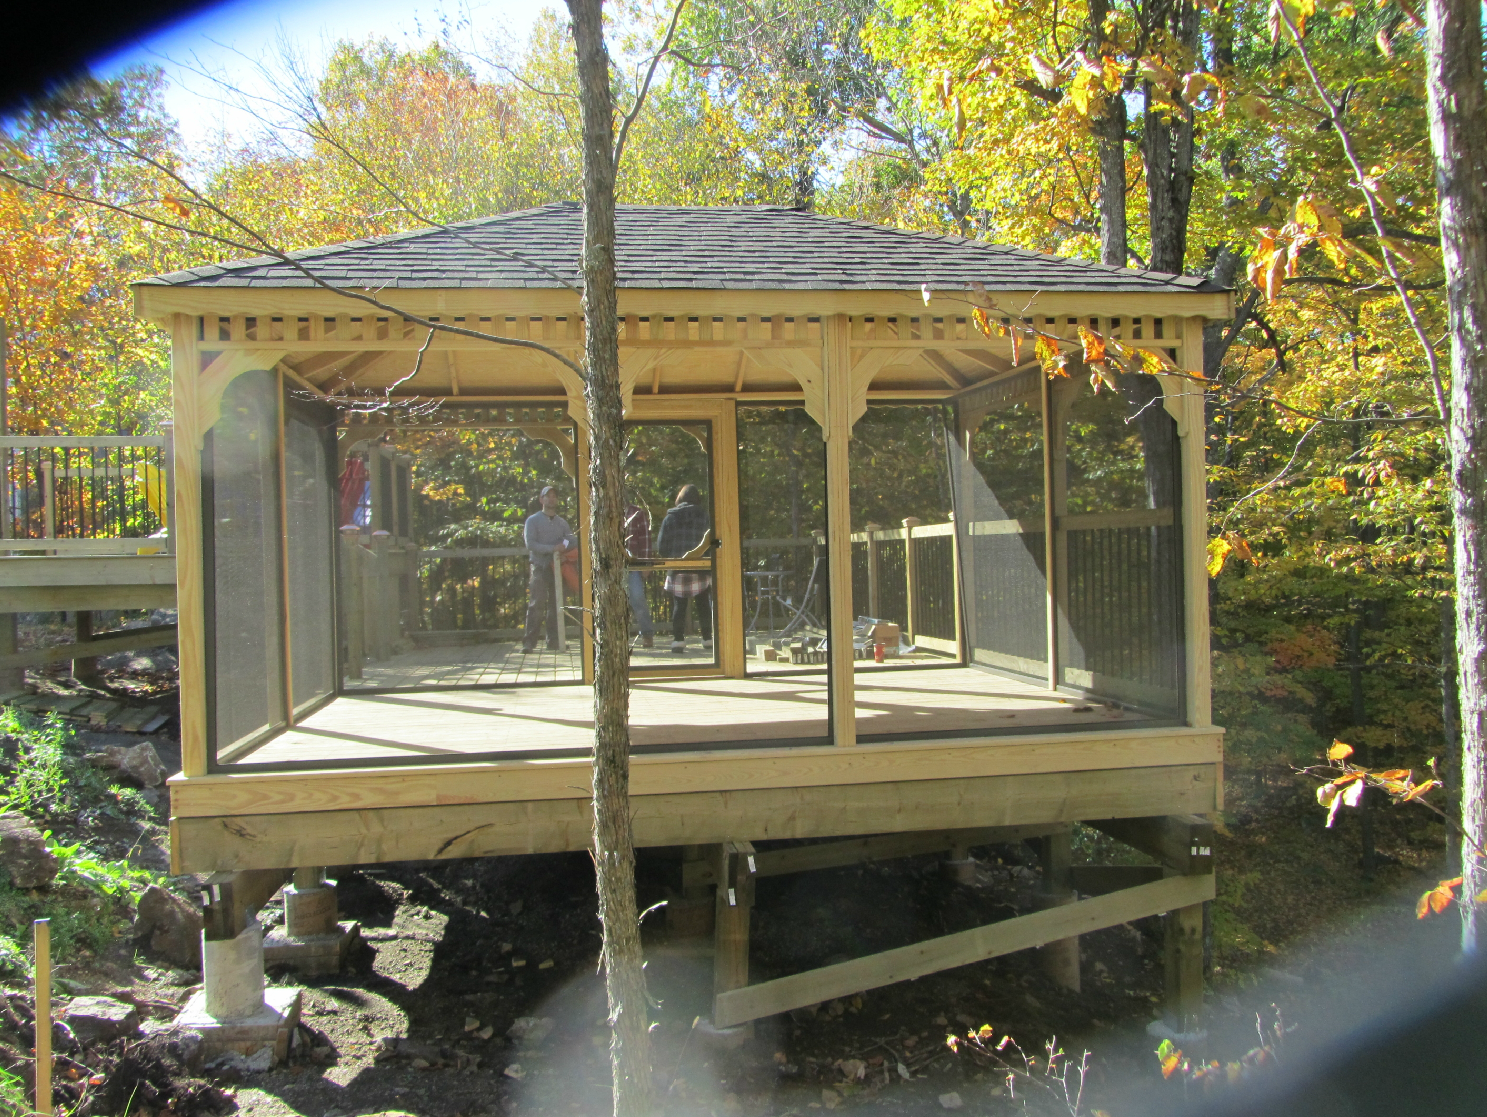 15x15 Gazebo | 8x10 Gazebo Canopy | Screened Gazebo